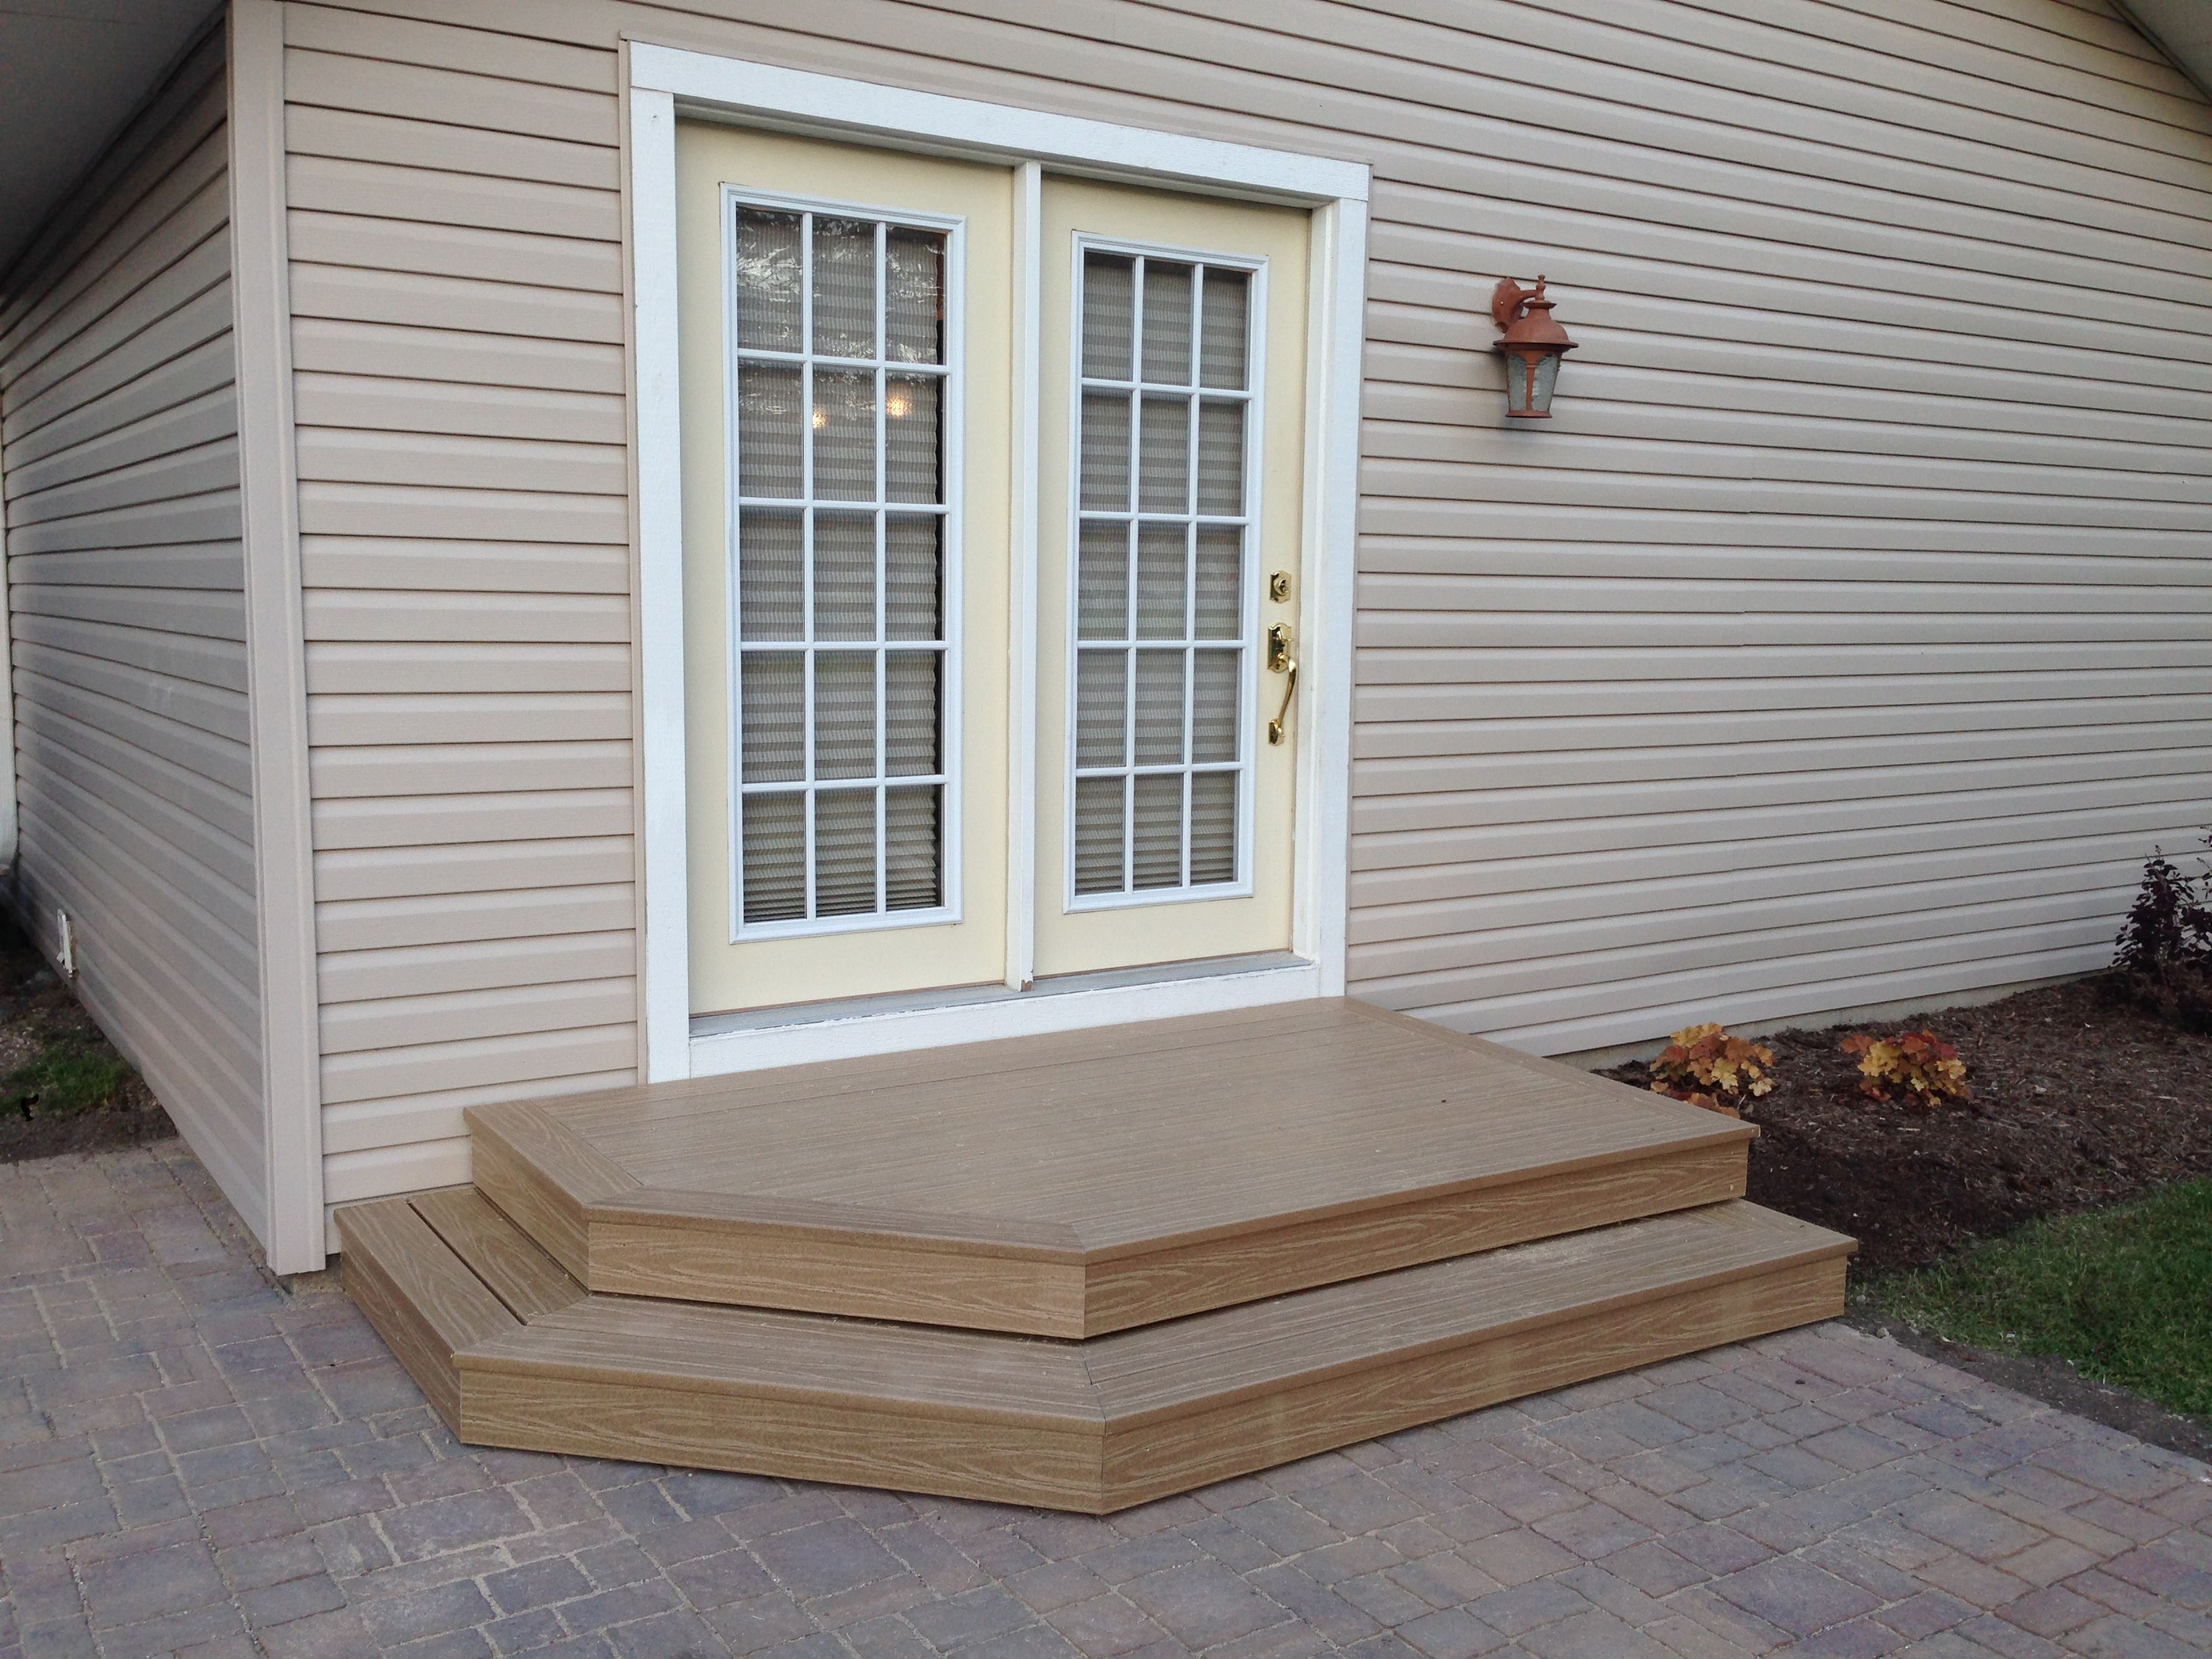 Best New Patio Pavers With 2 Step Deck Patio Stairs Patio 640 x 480